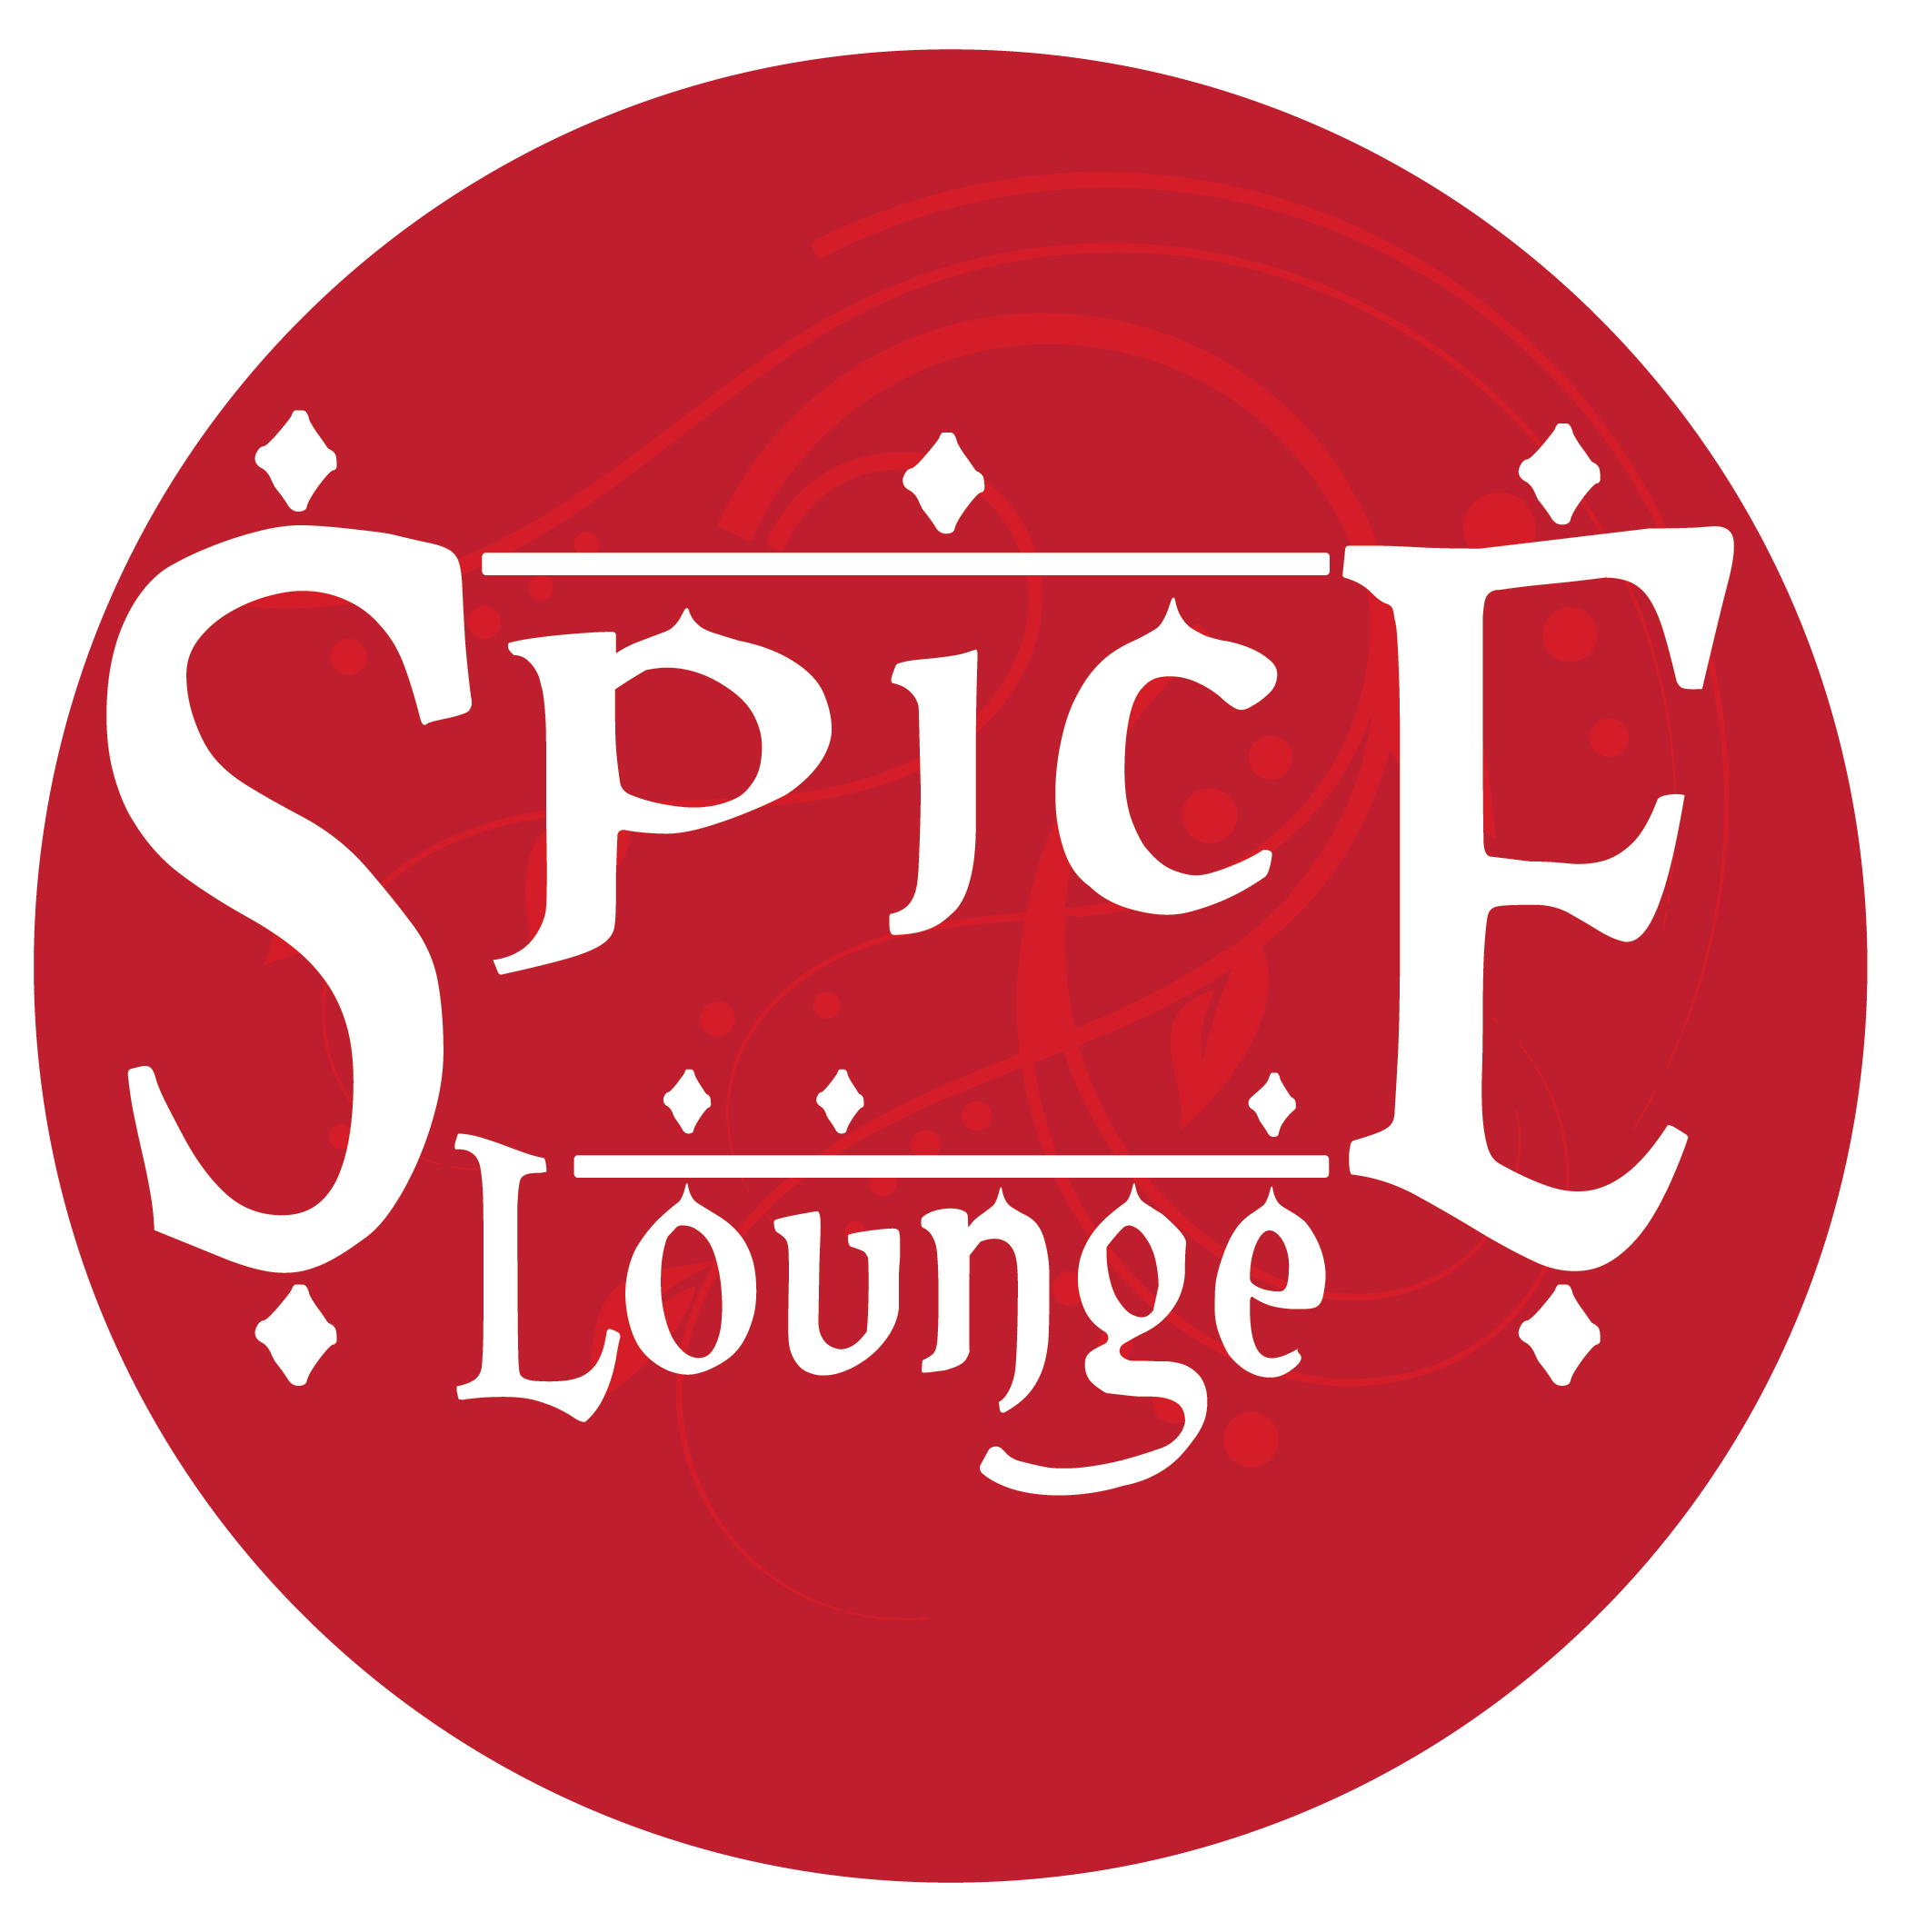 Spice lounge restaurant and. Waitress clipart hotel indian waiter